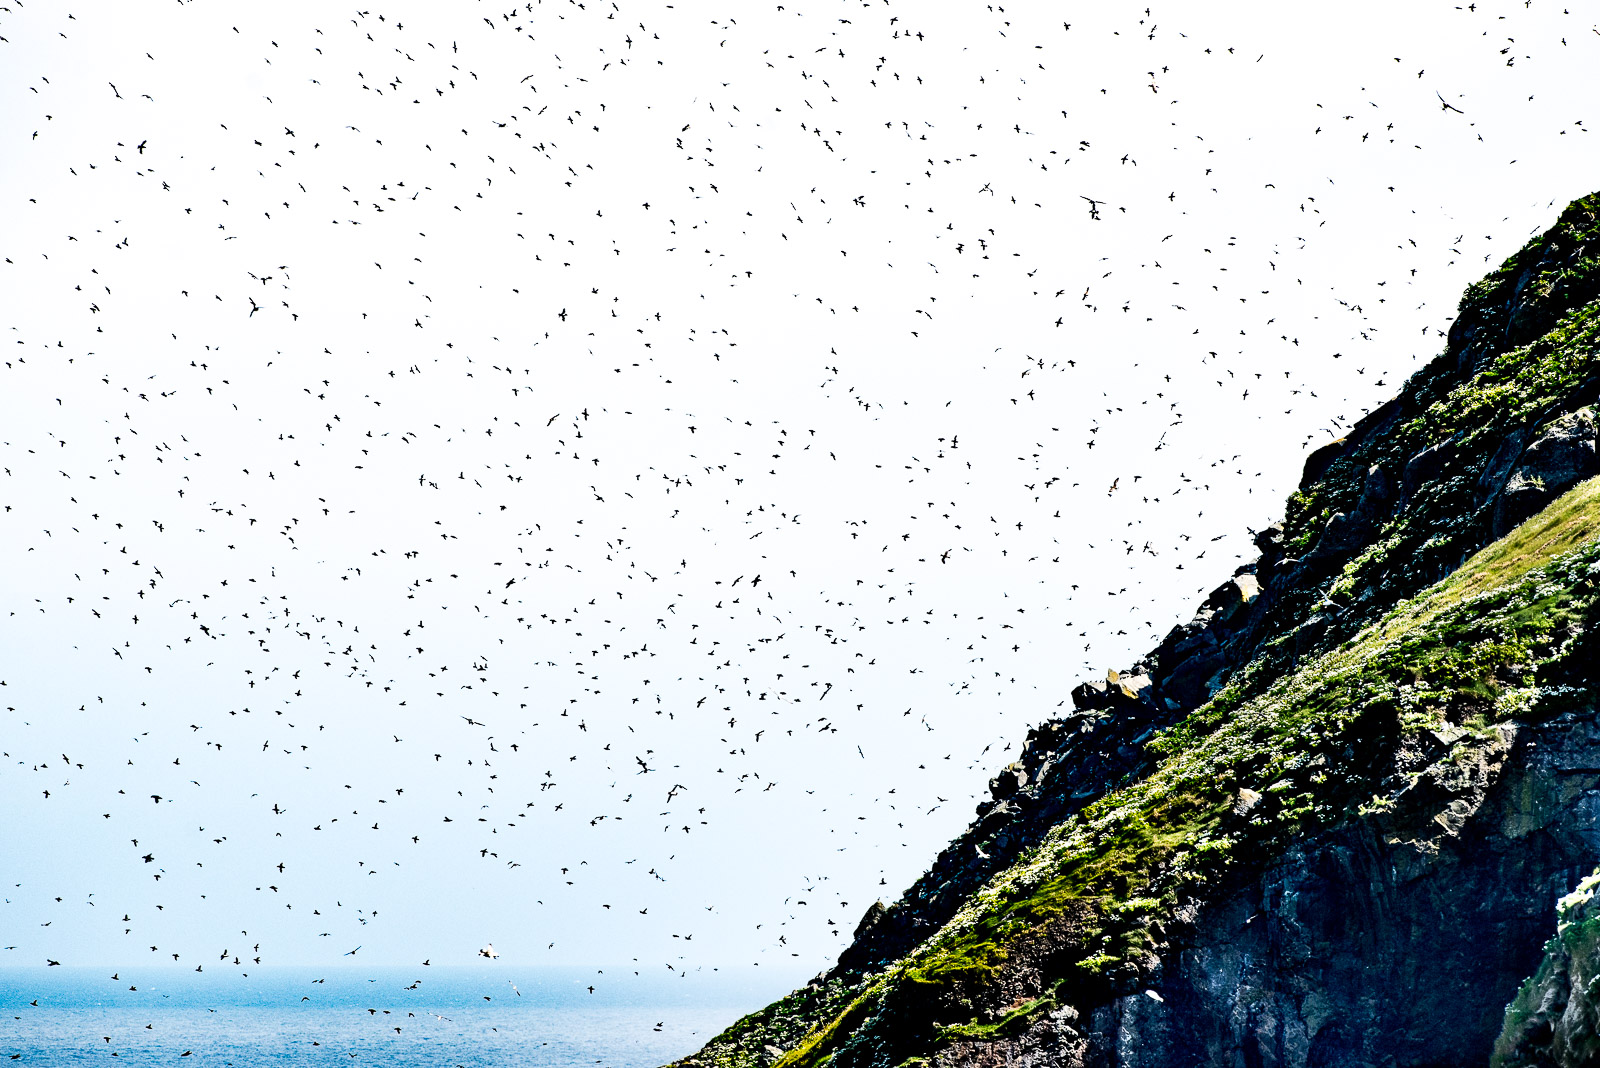 Puffins and Other Seabirds Circulating above Dun.  Nikon D810 500mm f4. 1/2000sec f8 ISO 560